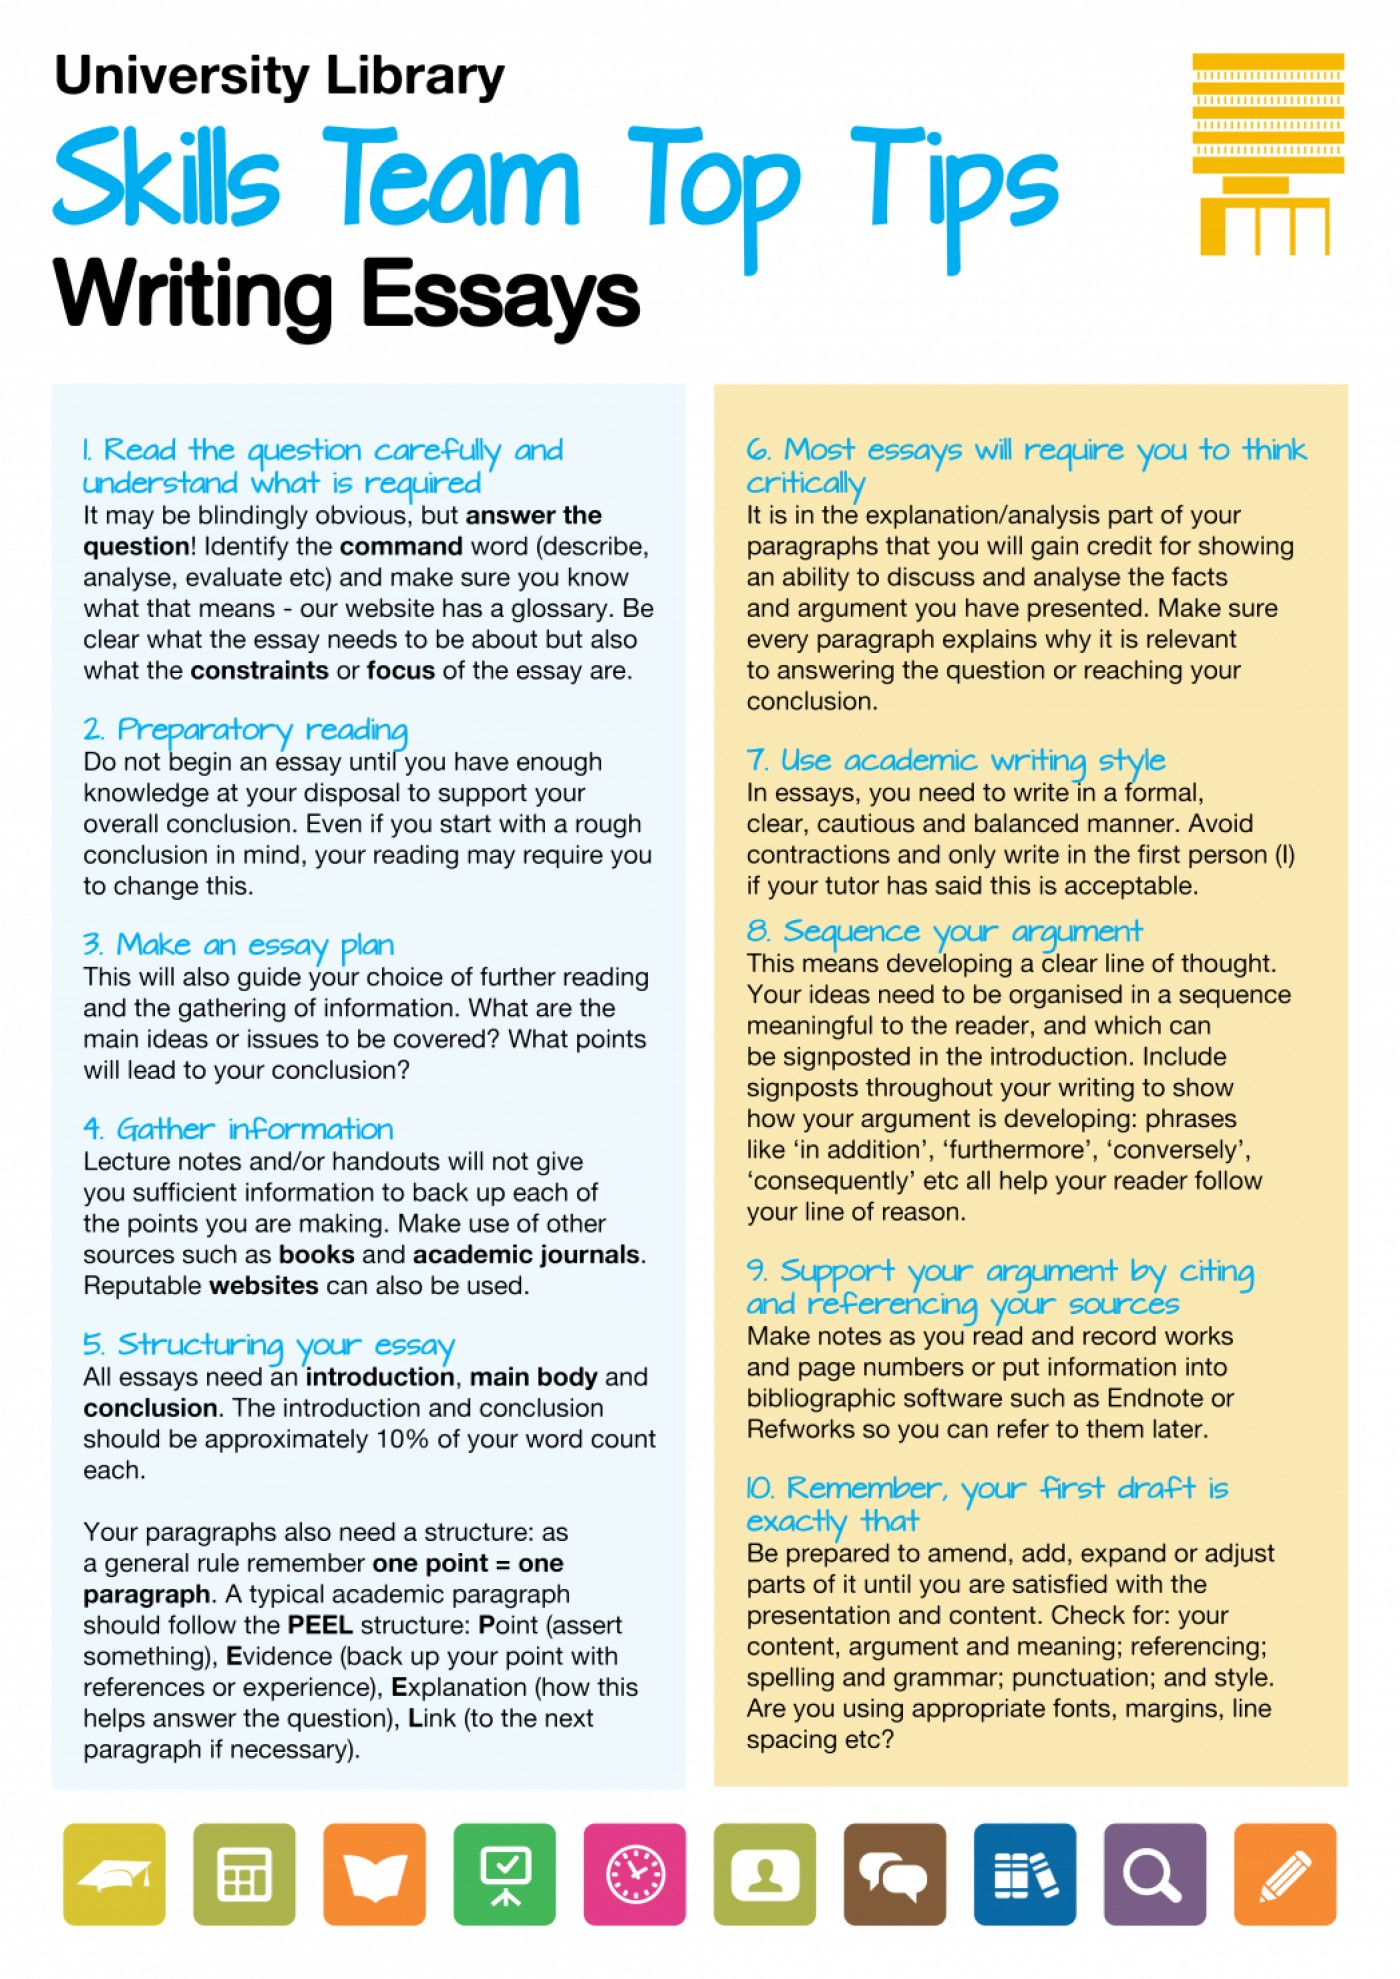 006 Parts Of Persuasive Essay Example Writing Introduction Previewverifierxkjhtnbdqxbvdecrd1zvlvtdue5vyqn13d8 Three Pdf Imposing 6 A 1400